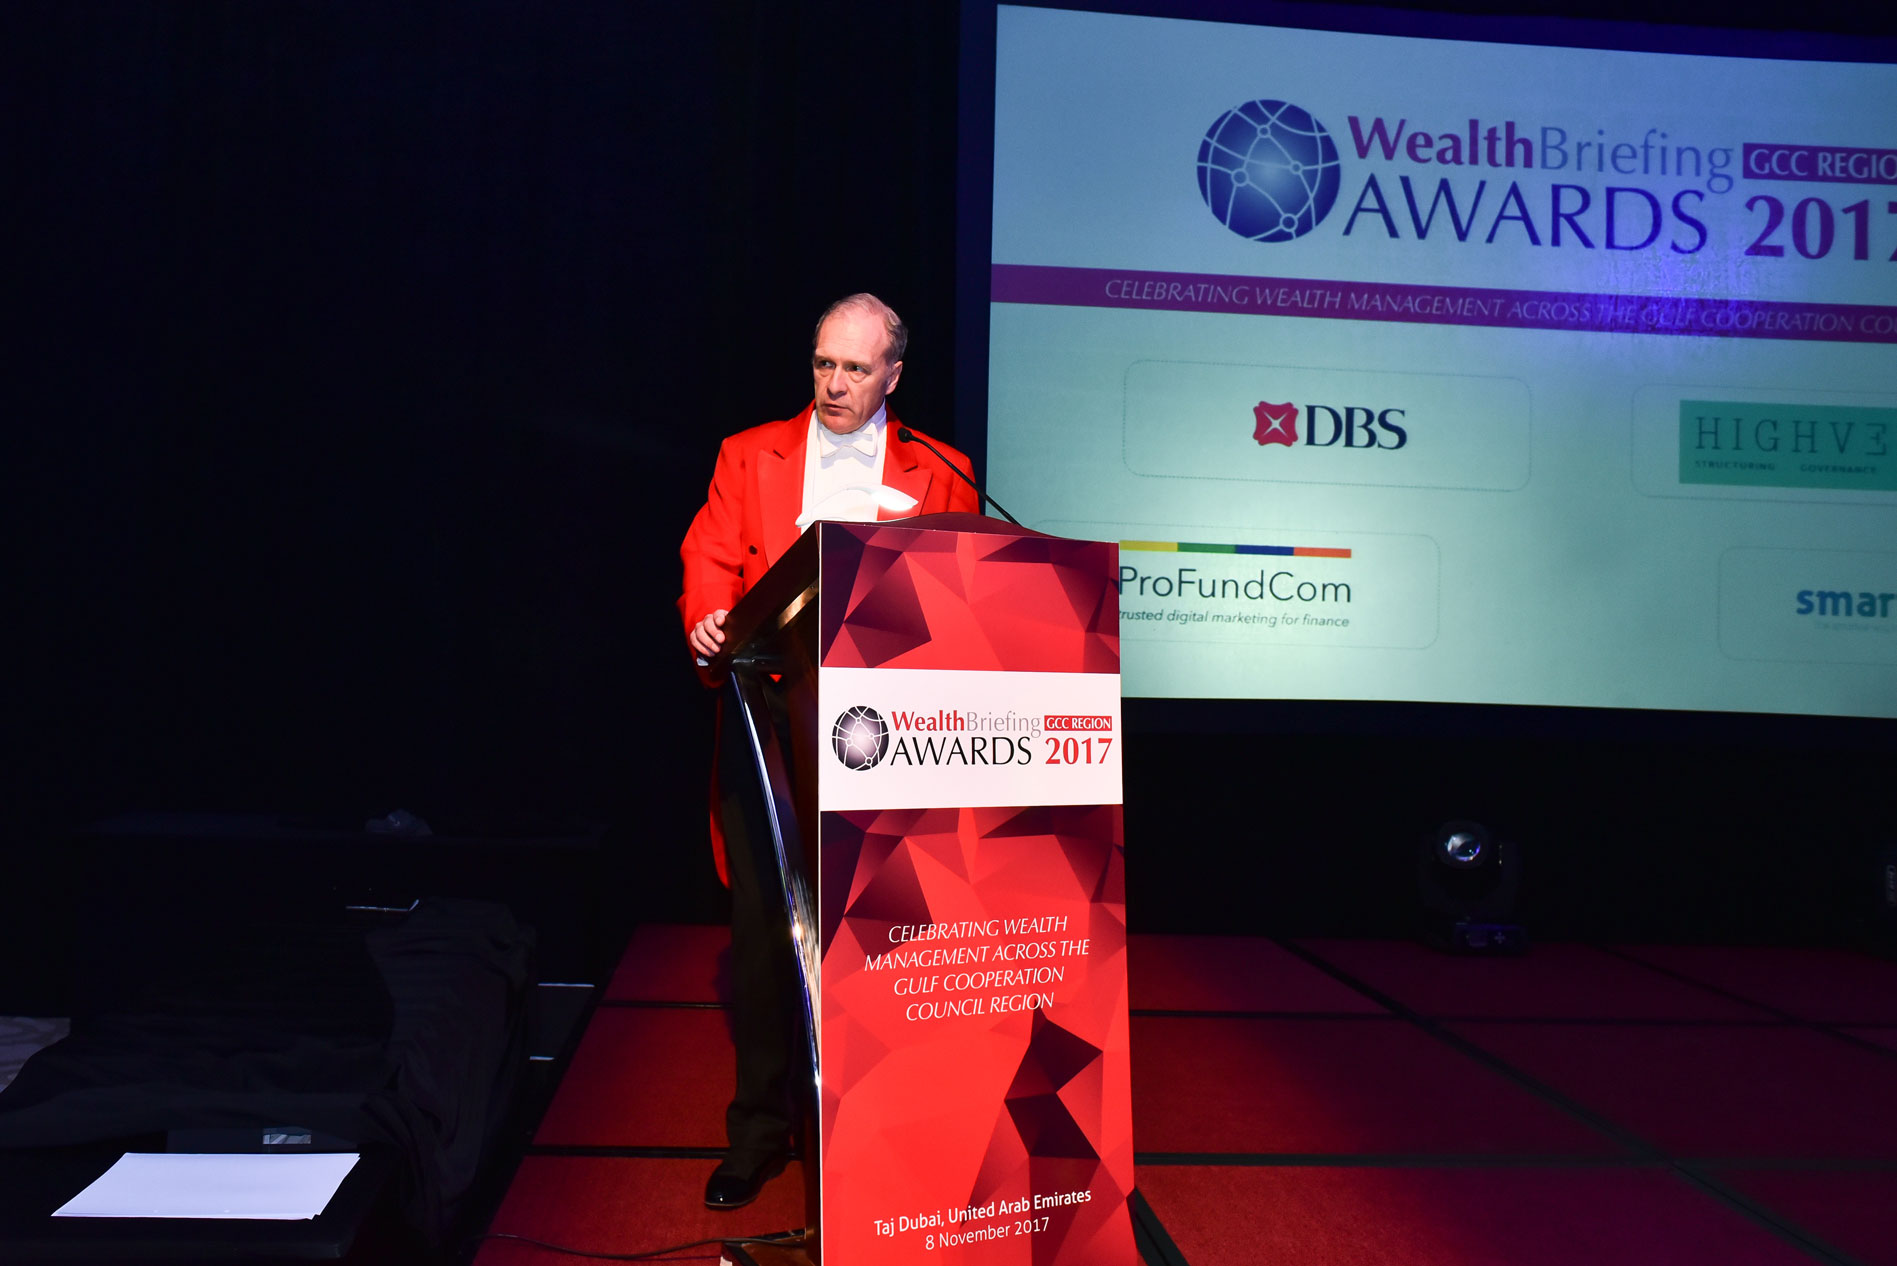 Wealthbriefing Gcc Awards 2017 Clearview Publishing